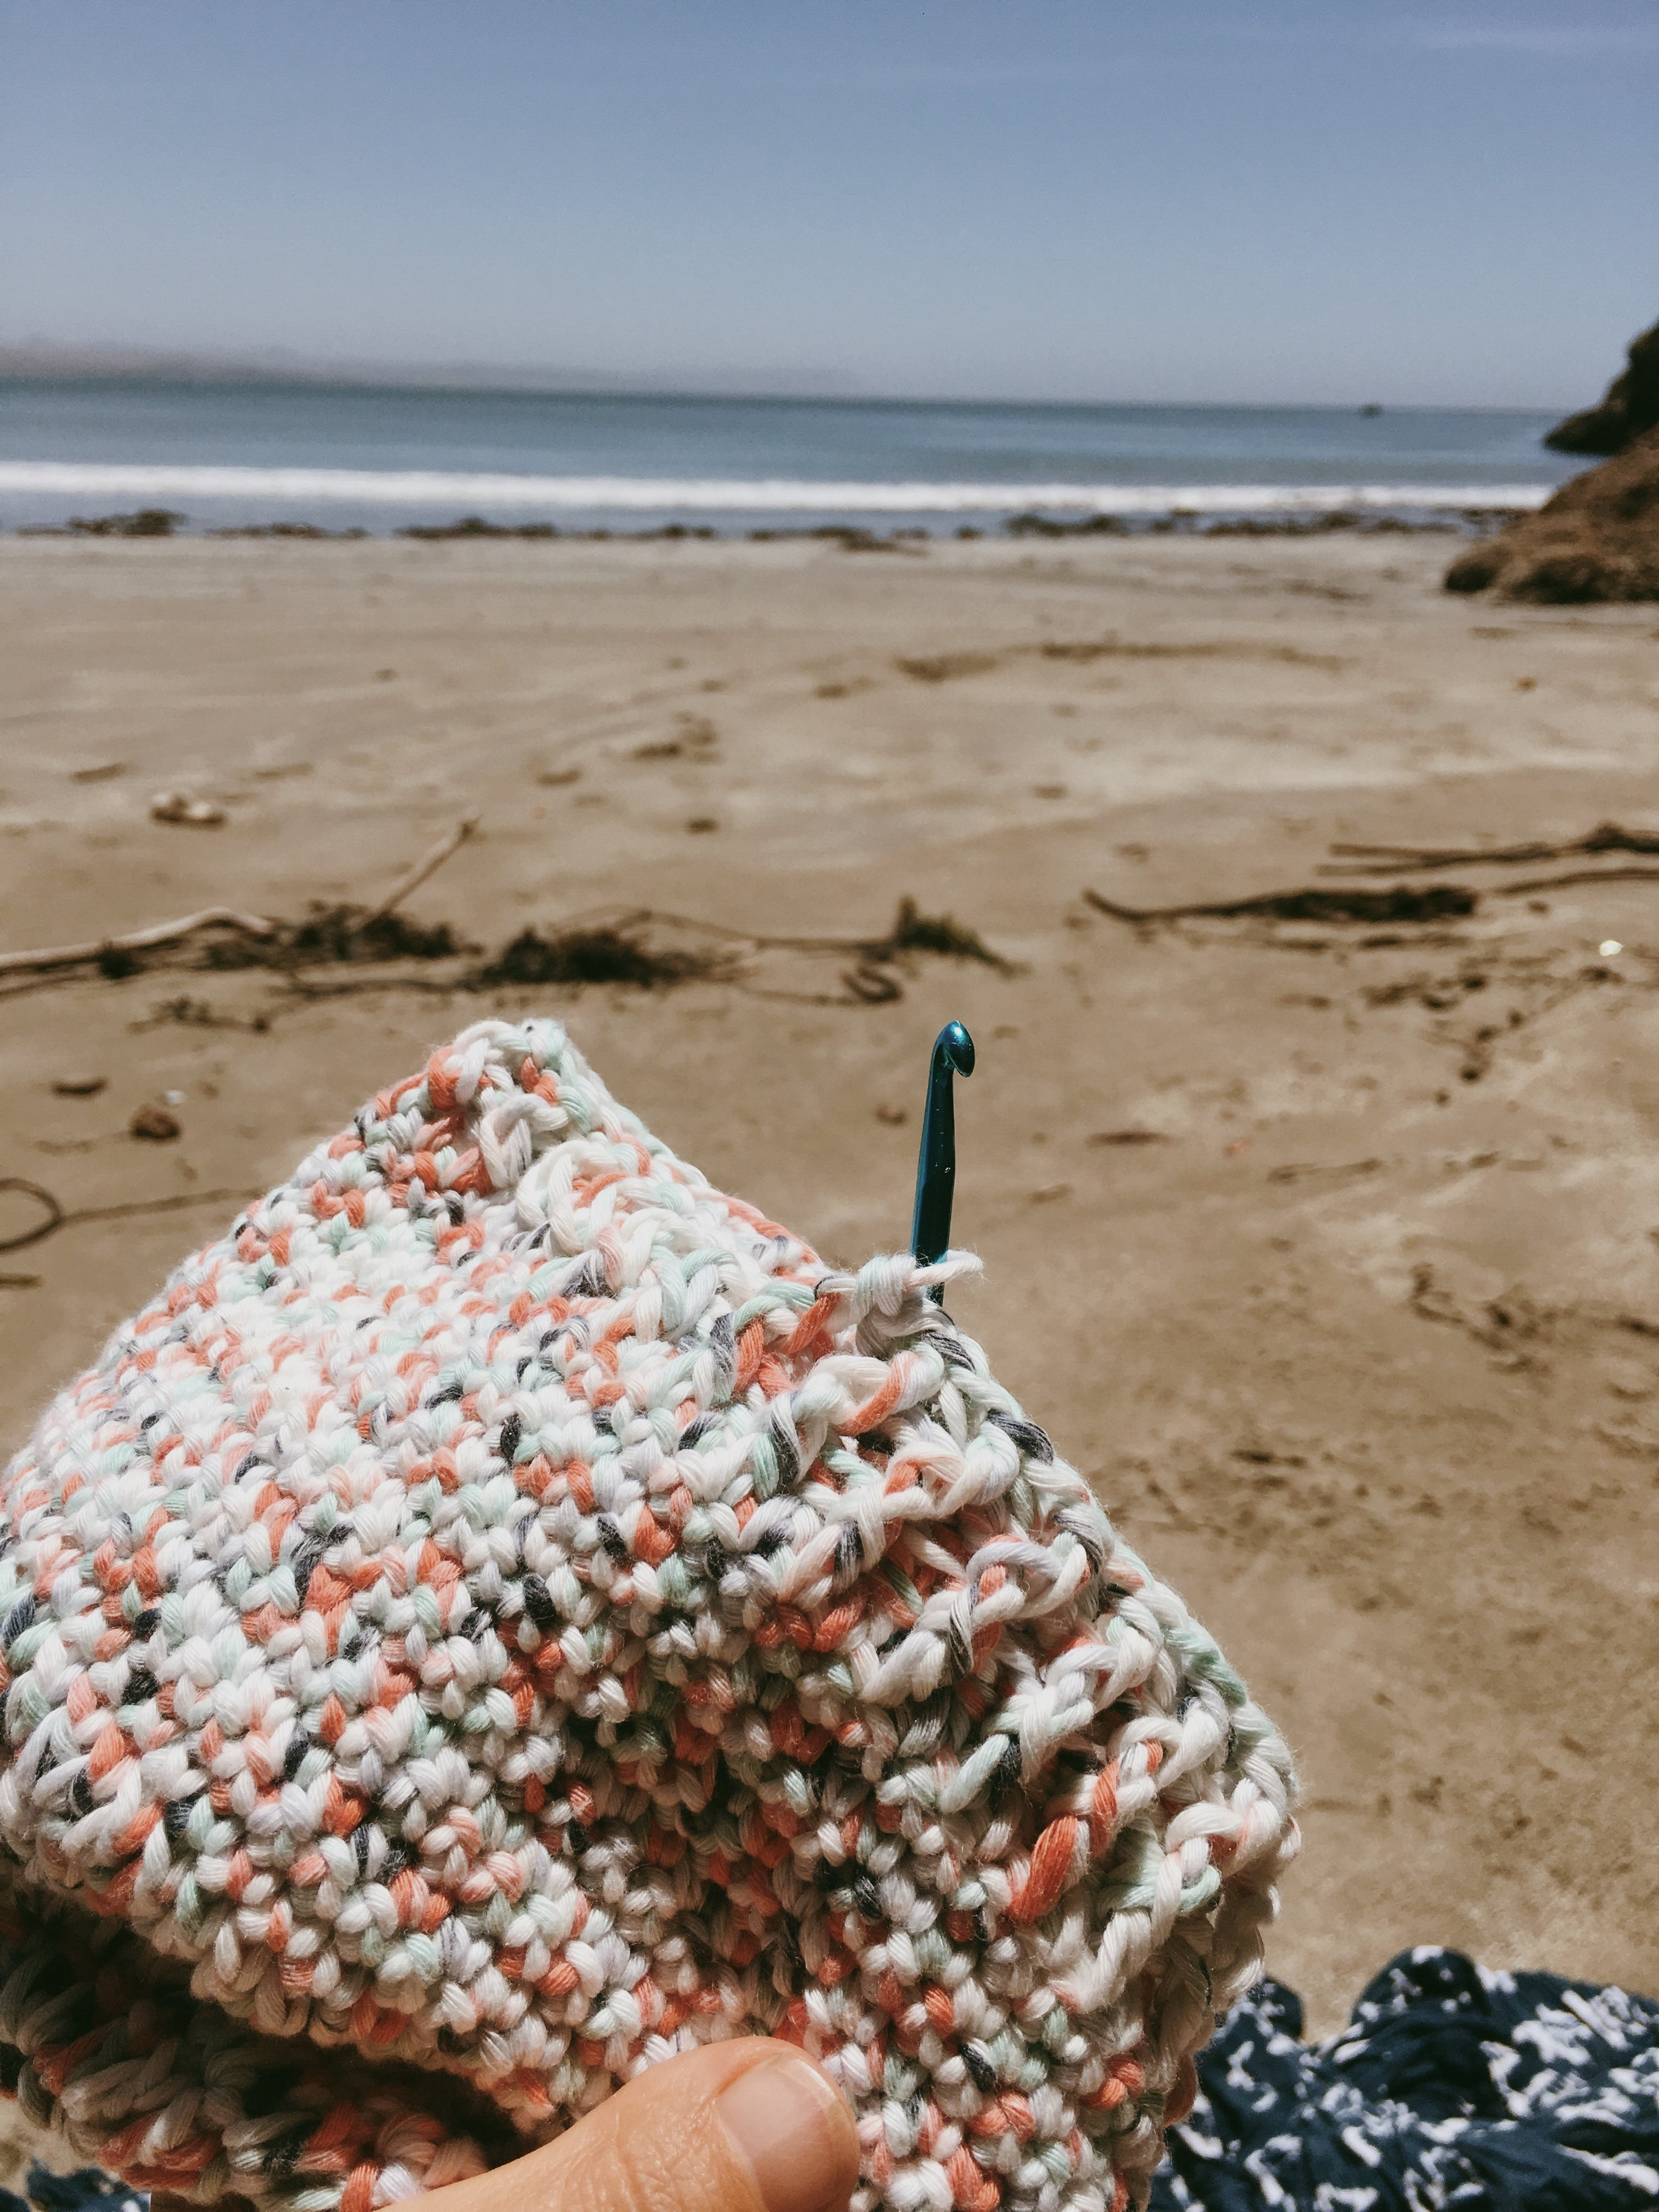 Crocheting a baby bonnet at the beach